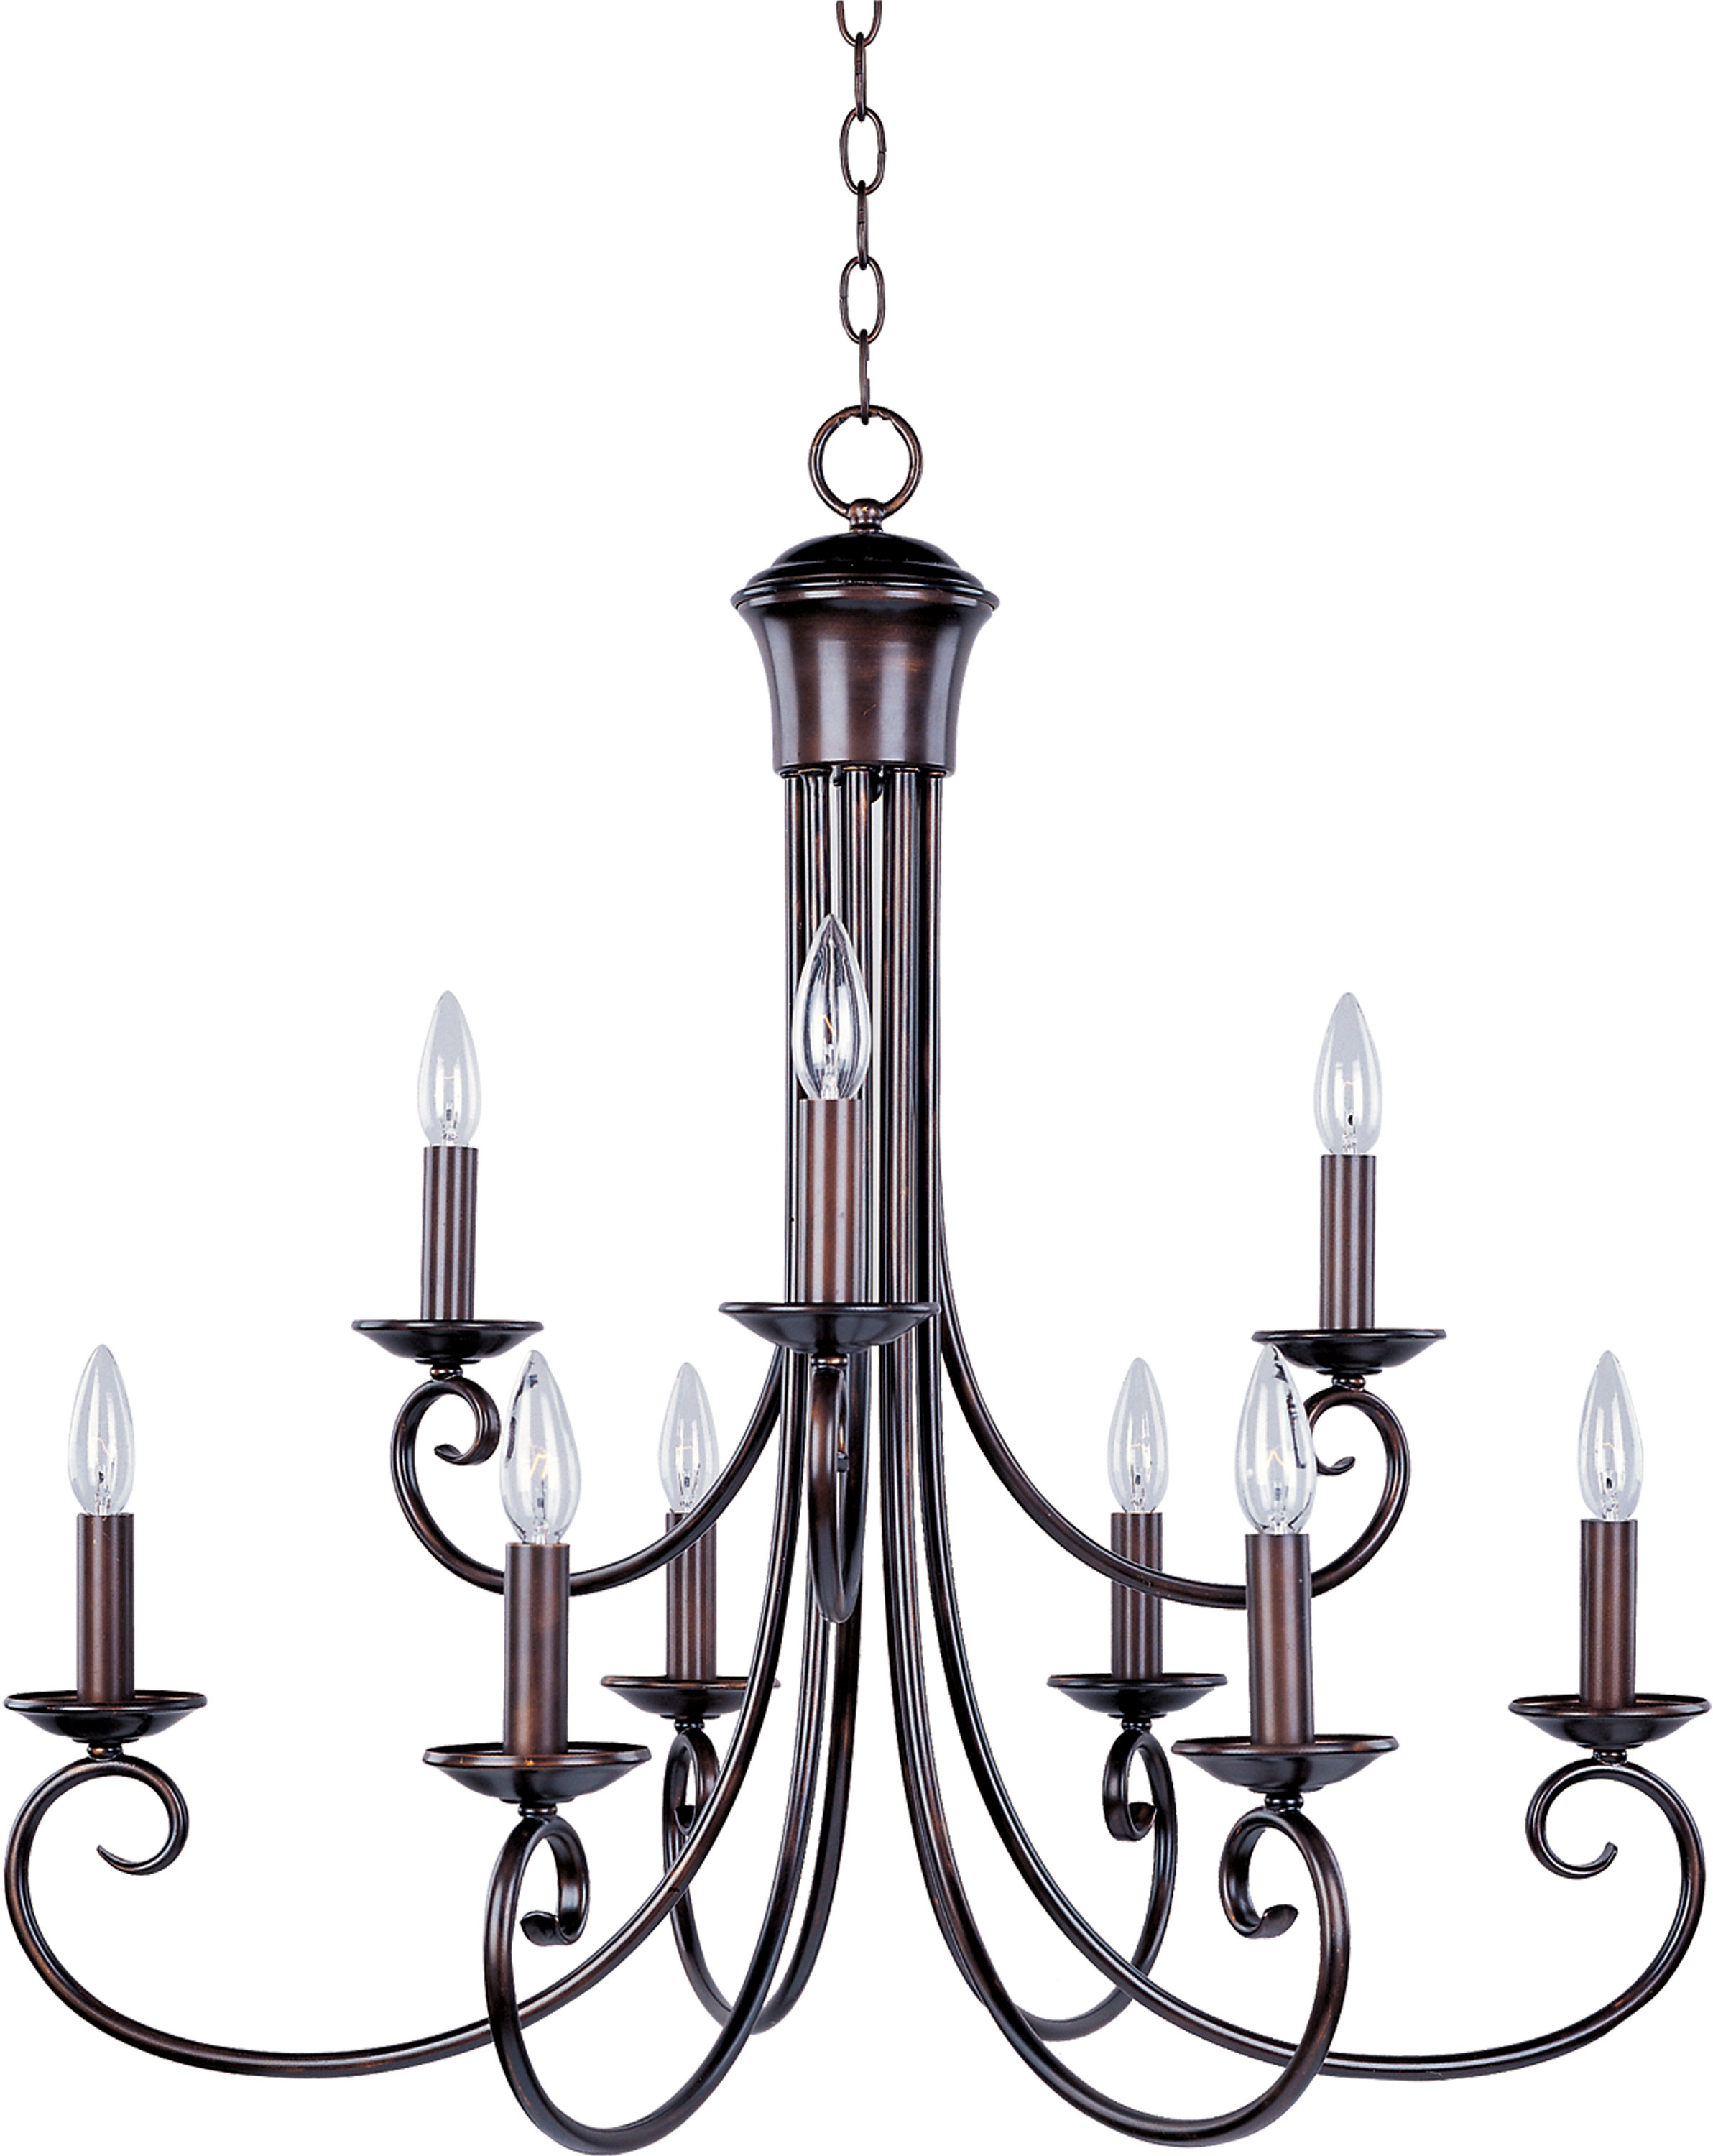 Gaines 9 Light Candle Style Chandeliers Inside Widely Used Kenedy 9 Light Candle Style Chandelier (View 10 of 20)